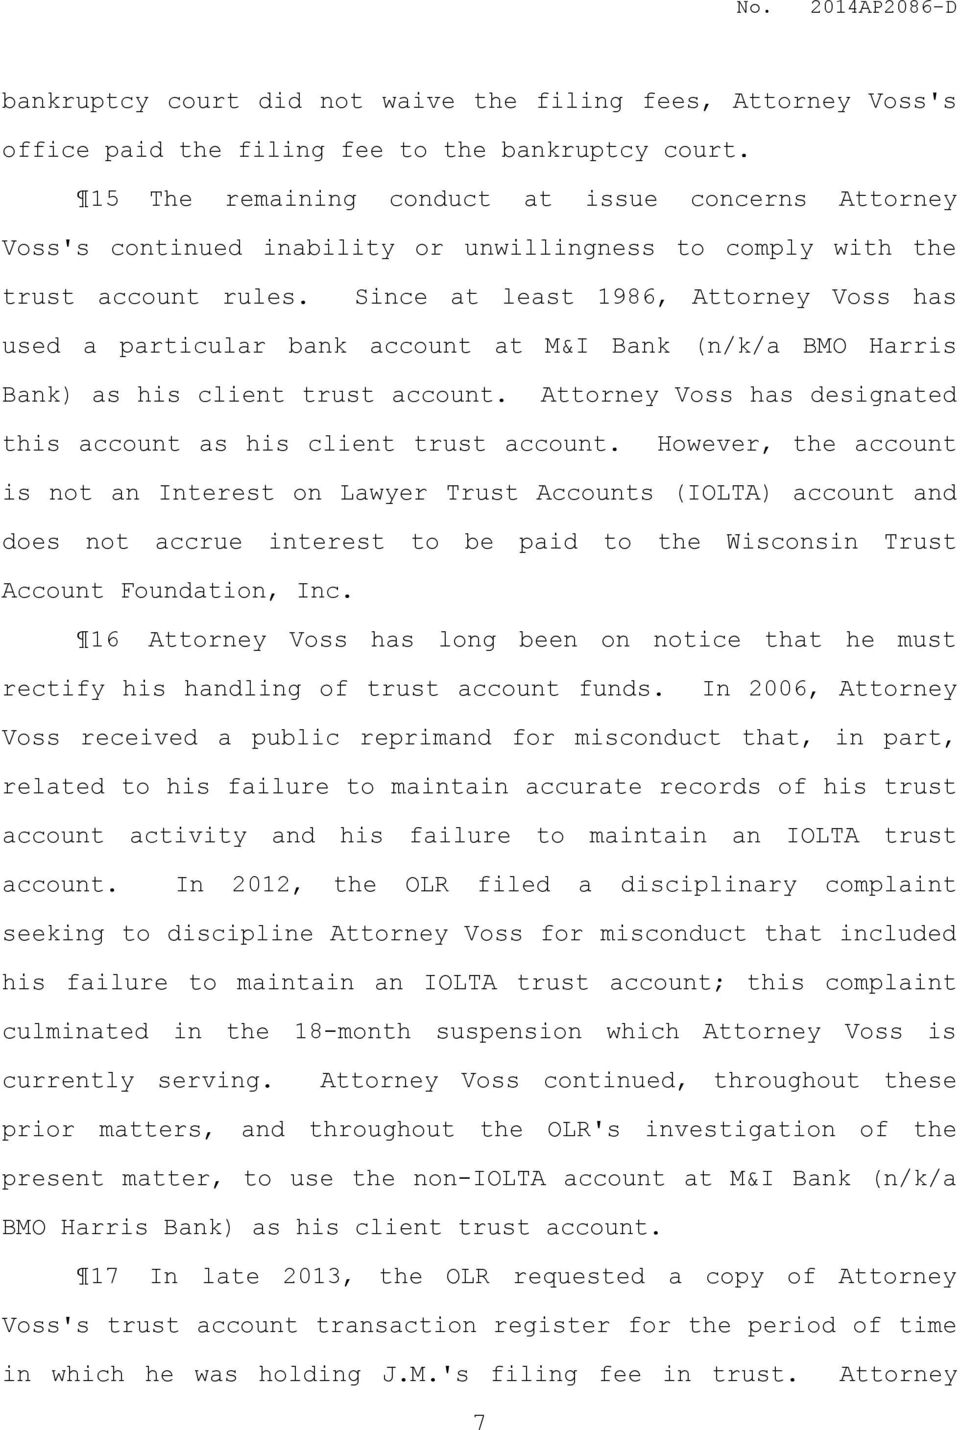 Since at least 1986, Attorney Voss has used a particular bank account at M&I Bank (n/k/a BMO Harris Bank) as his client trust account.